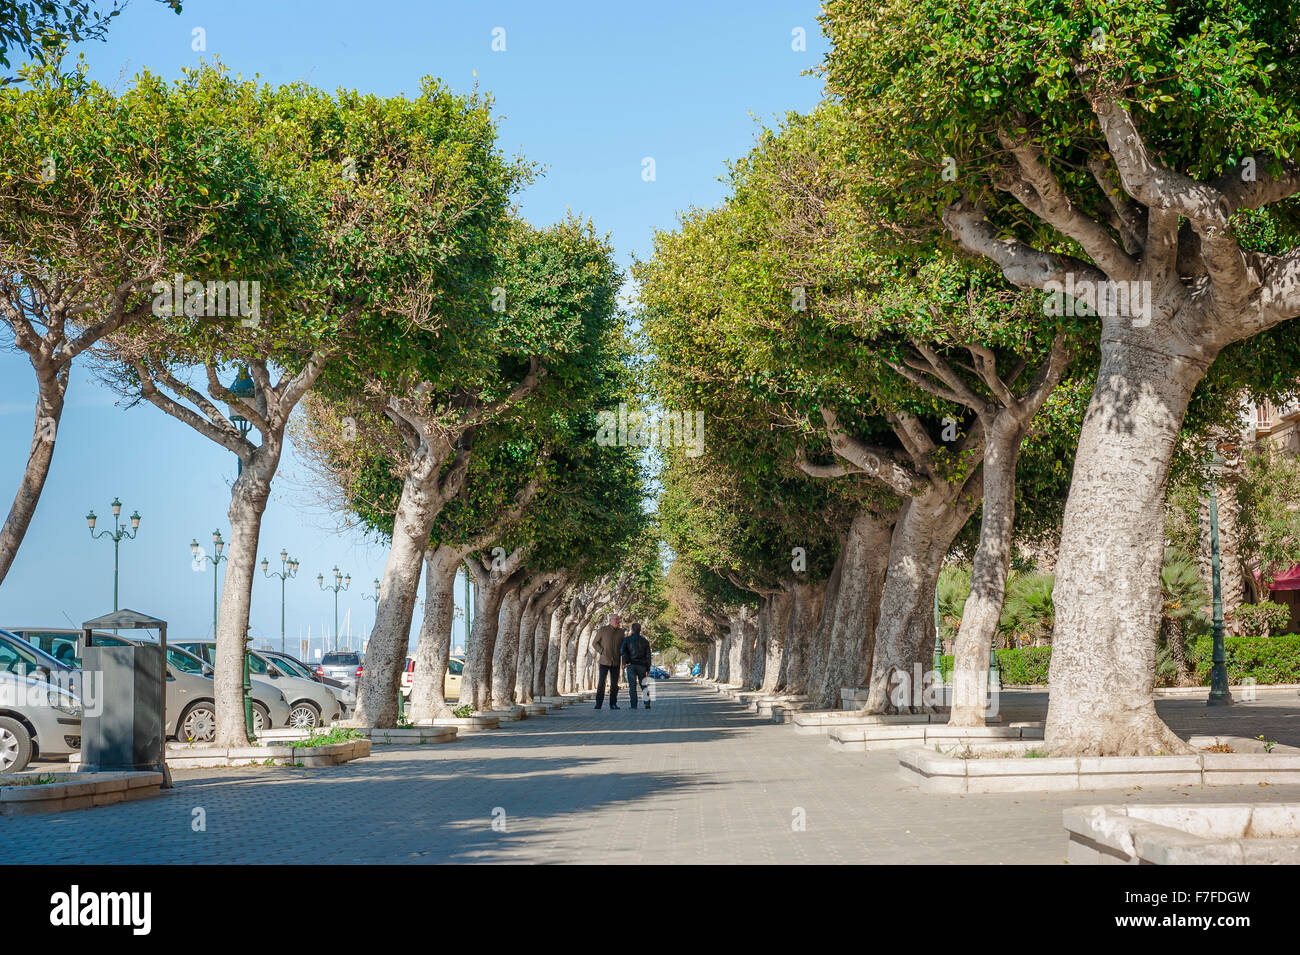 Trapani seafront, a shady boulevard along the waterfront in the harbor area of Trapani, Sicily. - Stock Image